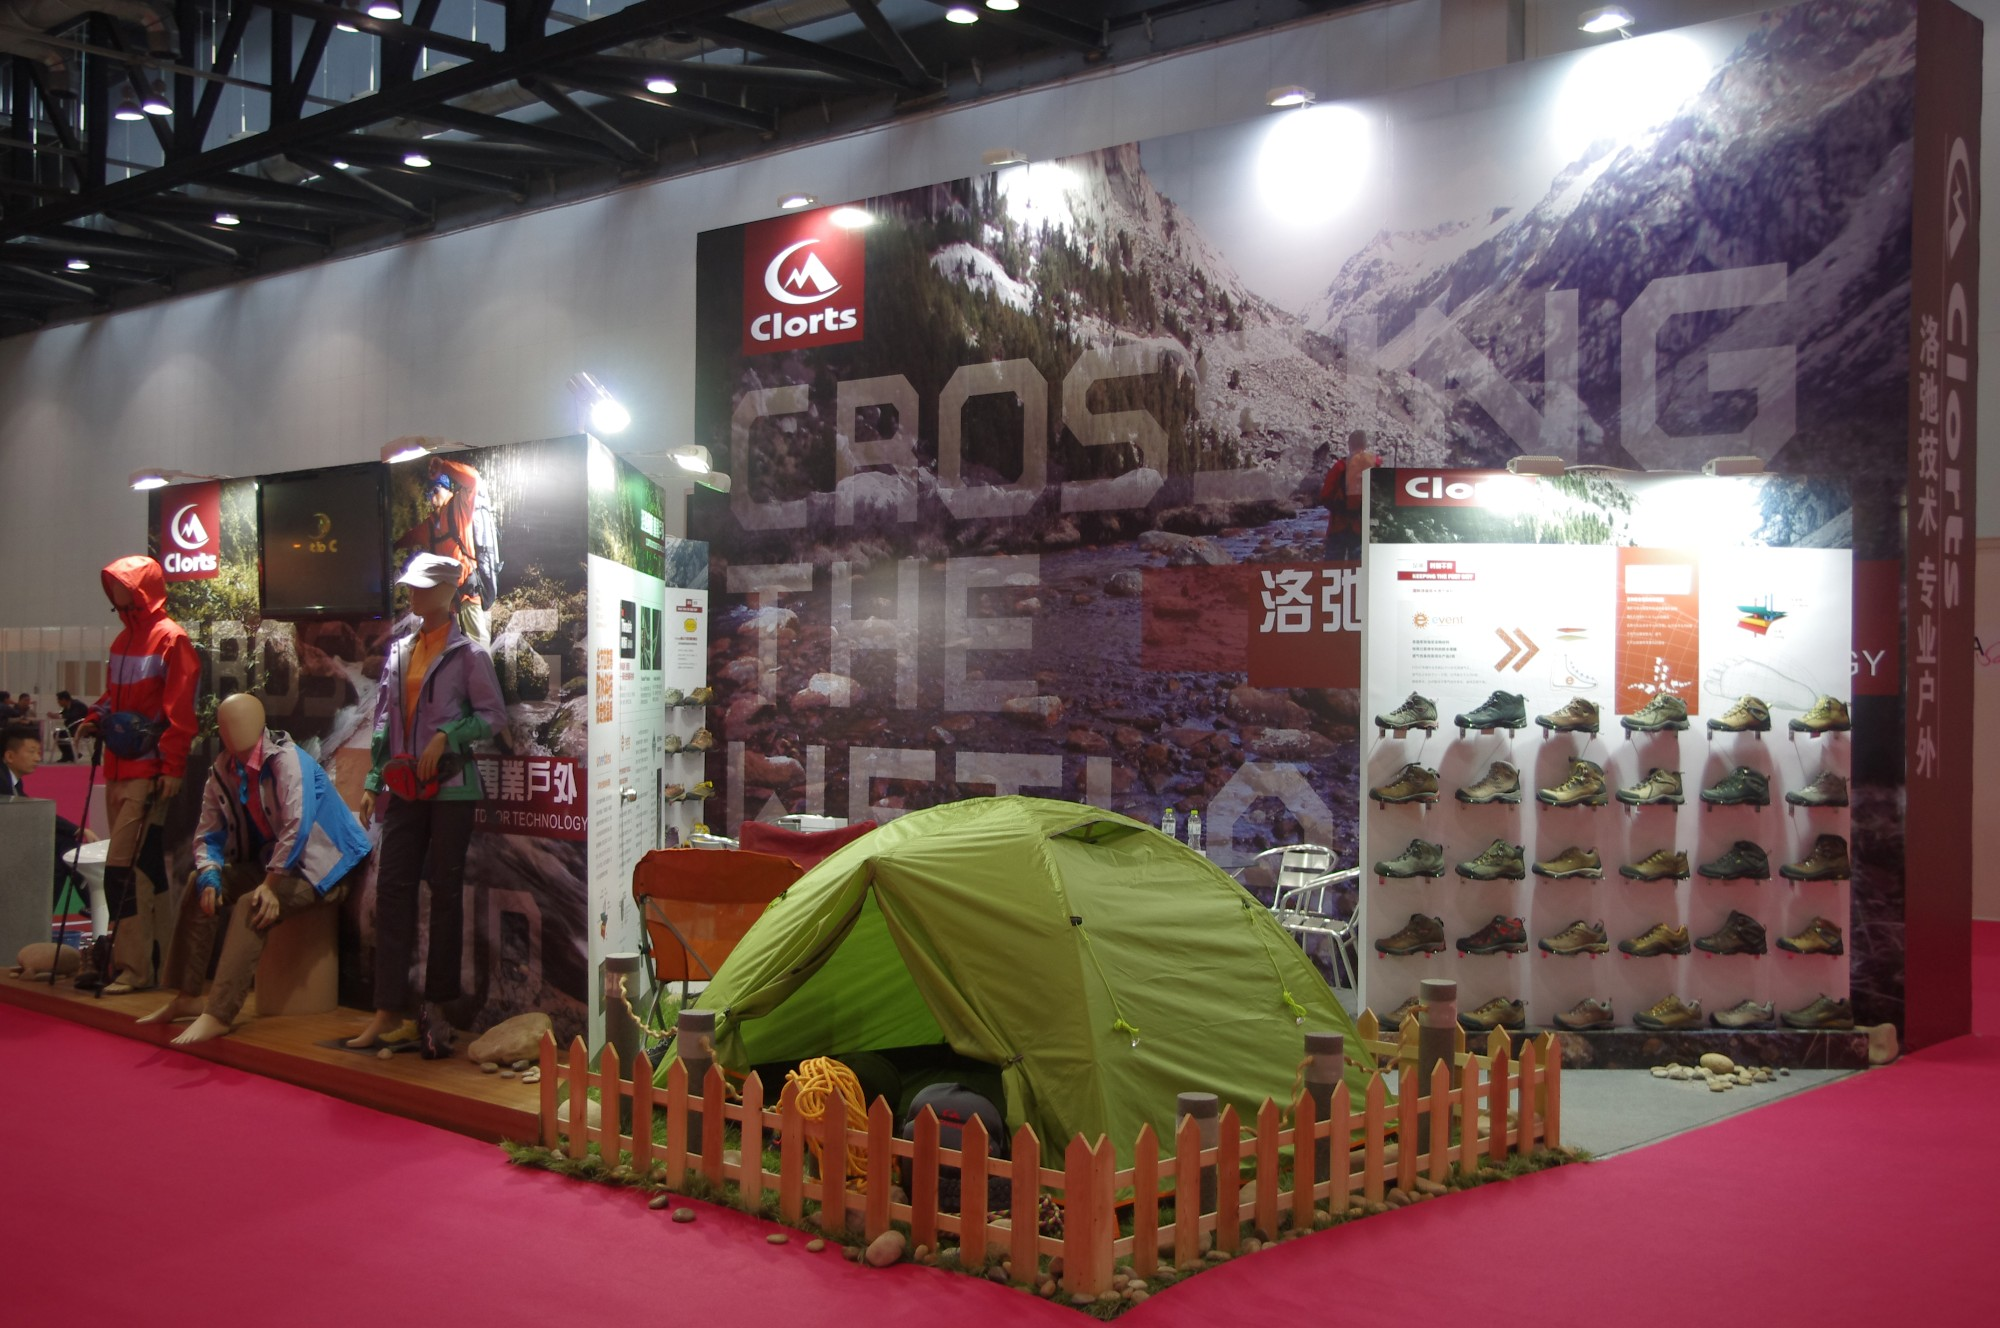 October 2012 Beijing International Brands Shoes & Accessories Fair 2012